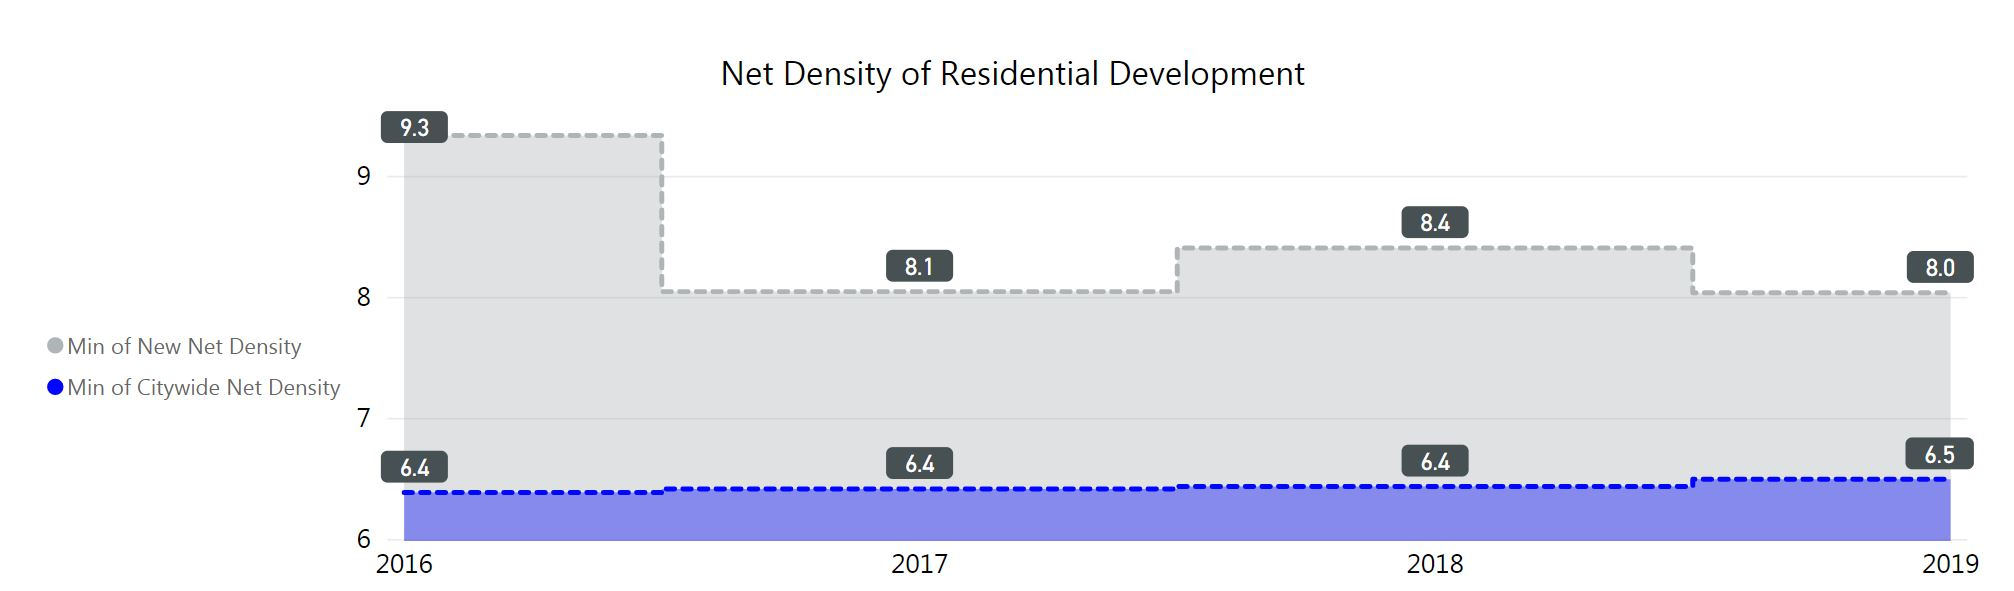 graph net density of residential development. citywide from 6.4 in 2016 to 6.5 to 2019. new net density 9.3 in 2016 to 8.0 in 2019